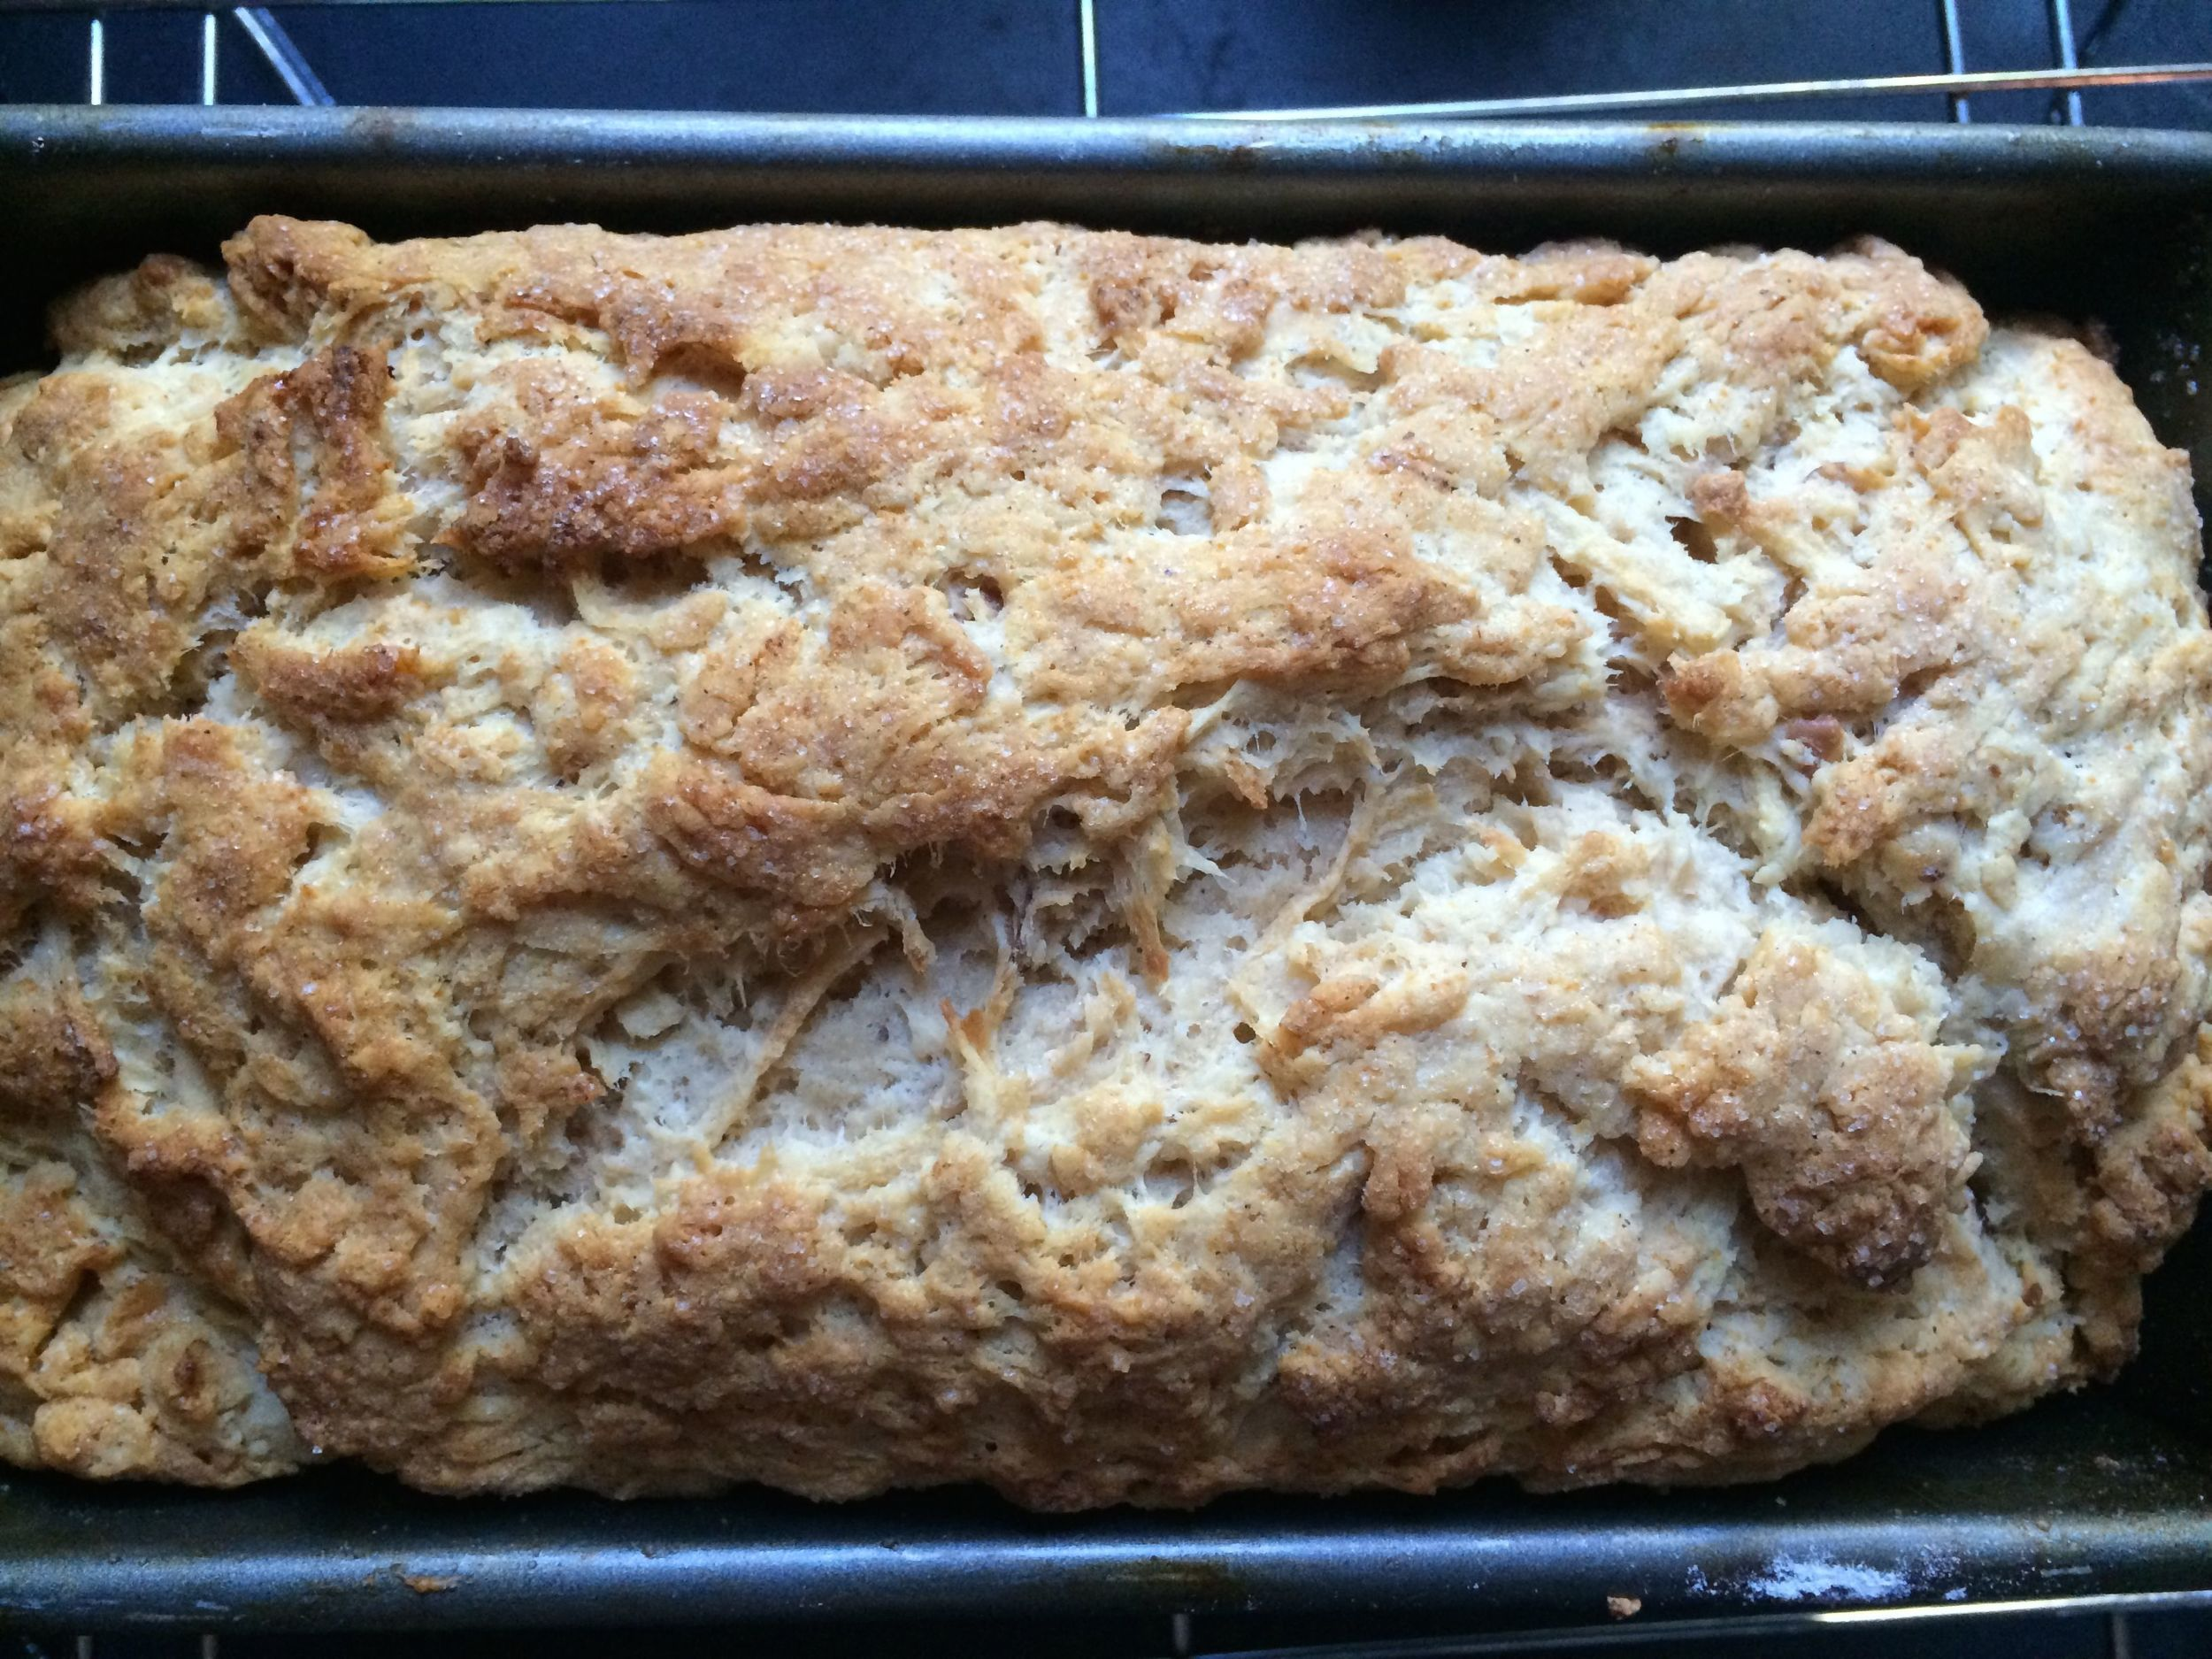 Cider, y'know, the alcoholic kind, makes for a great beer bread. With apples.